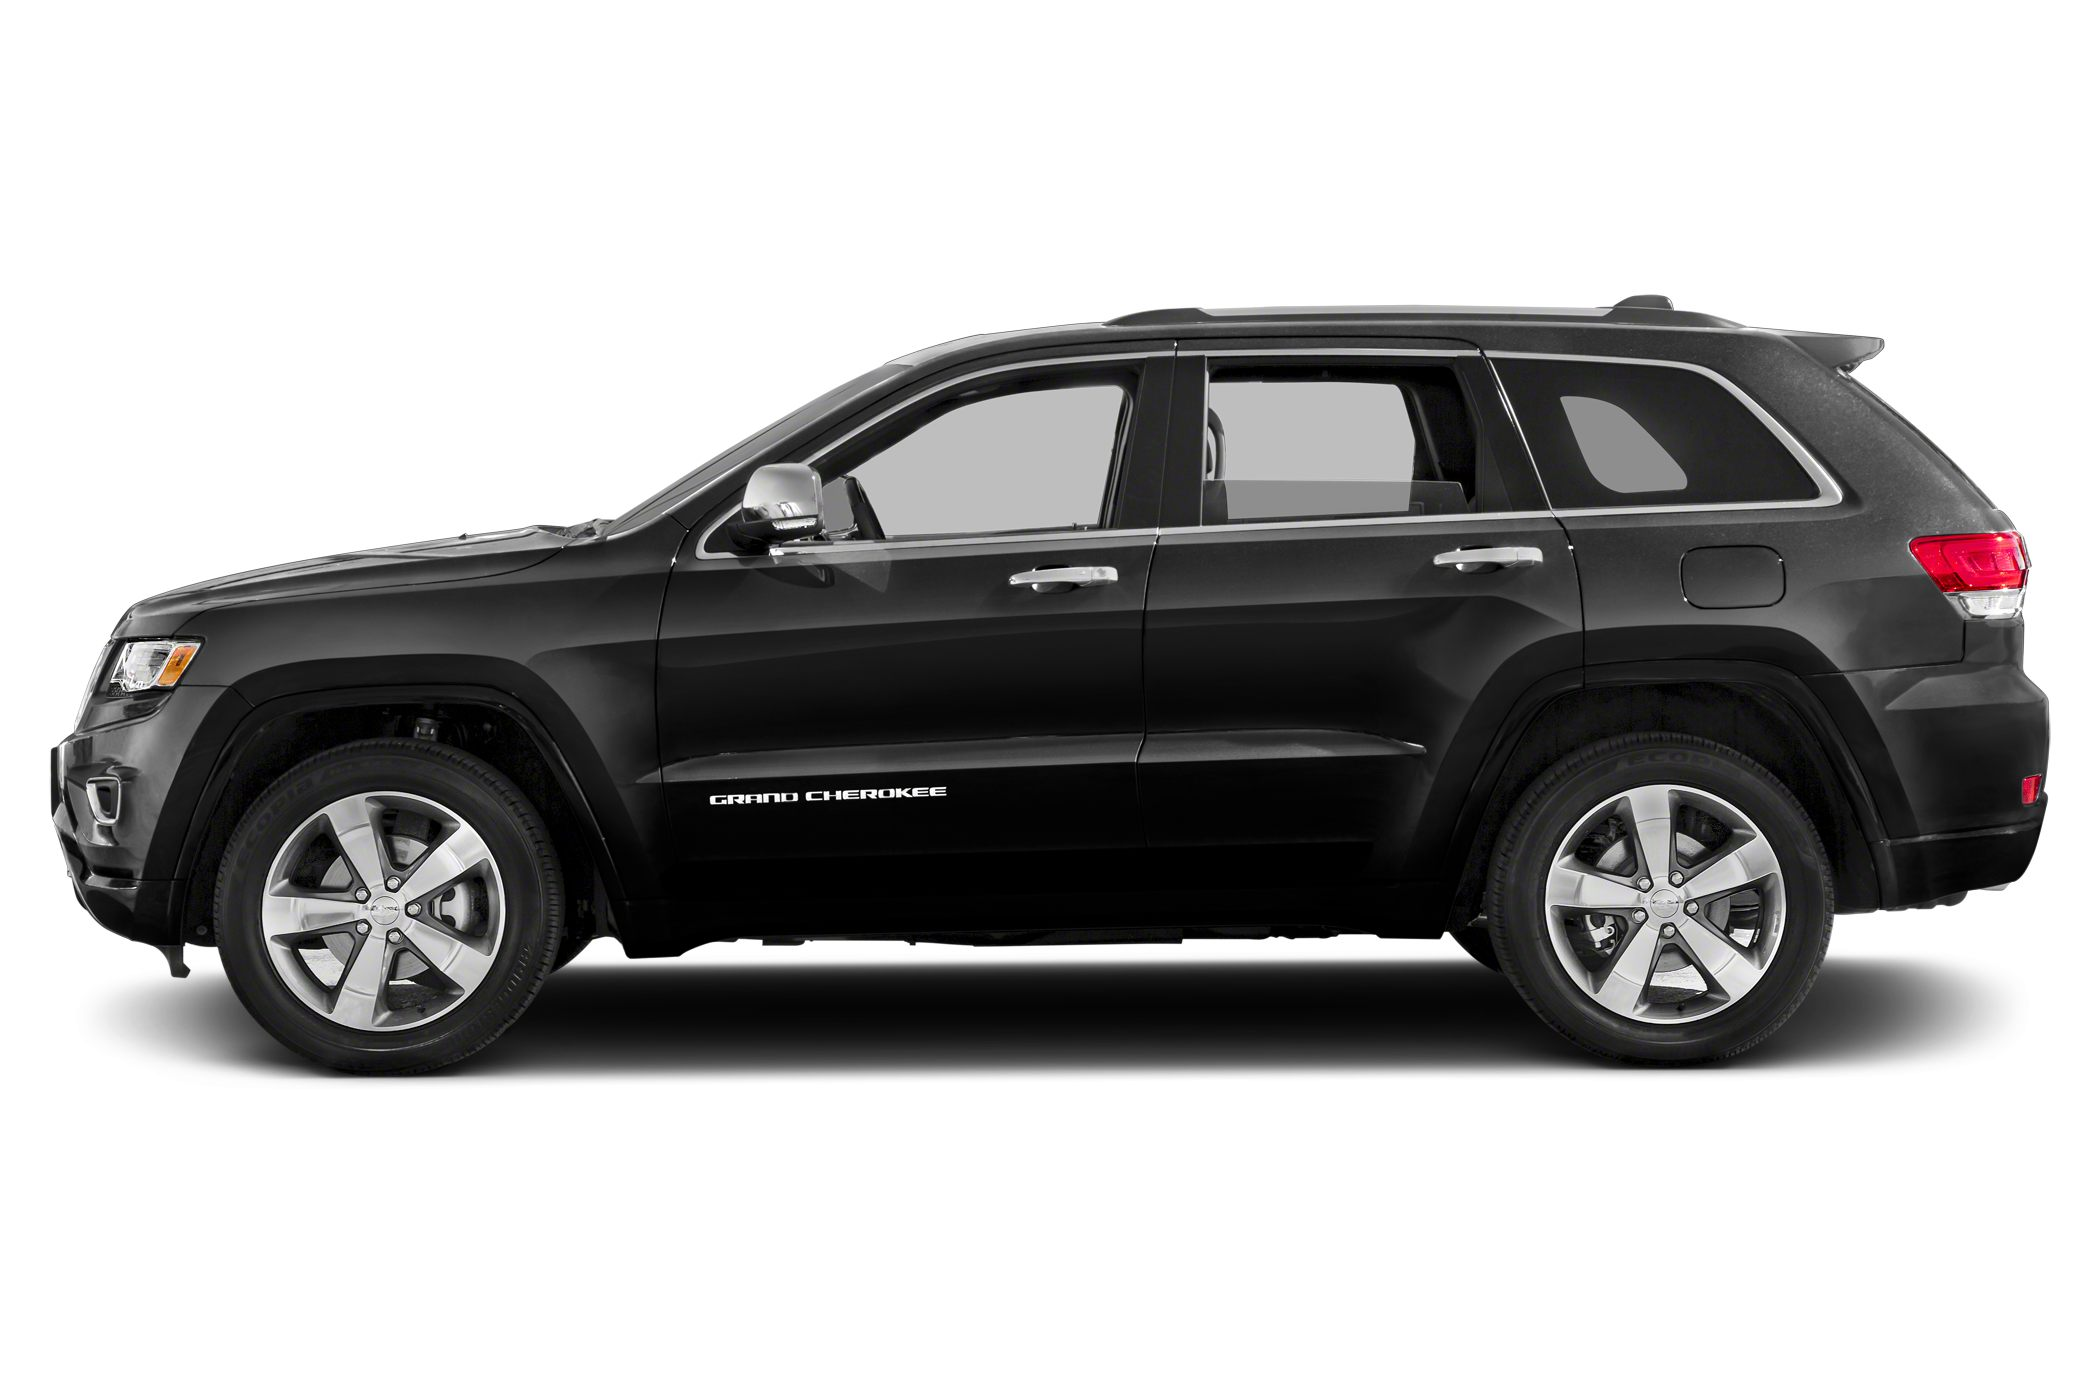 Used 2014 Jeep Grand Cherokee Overland Inventory Vehicle Details